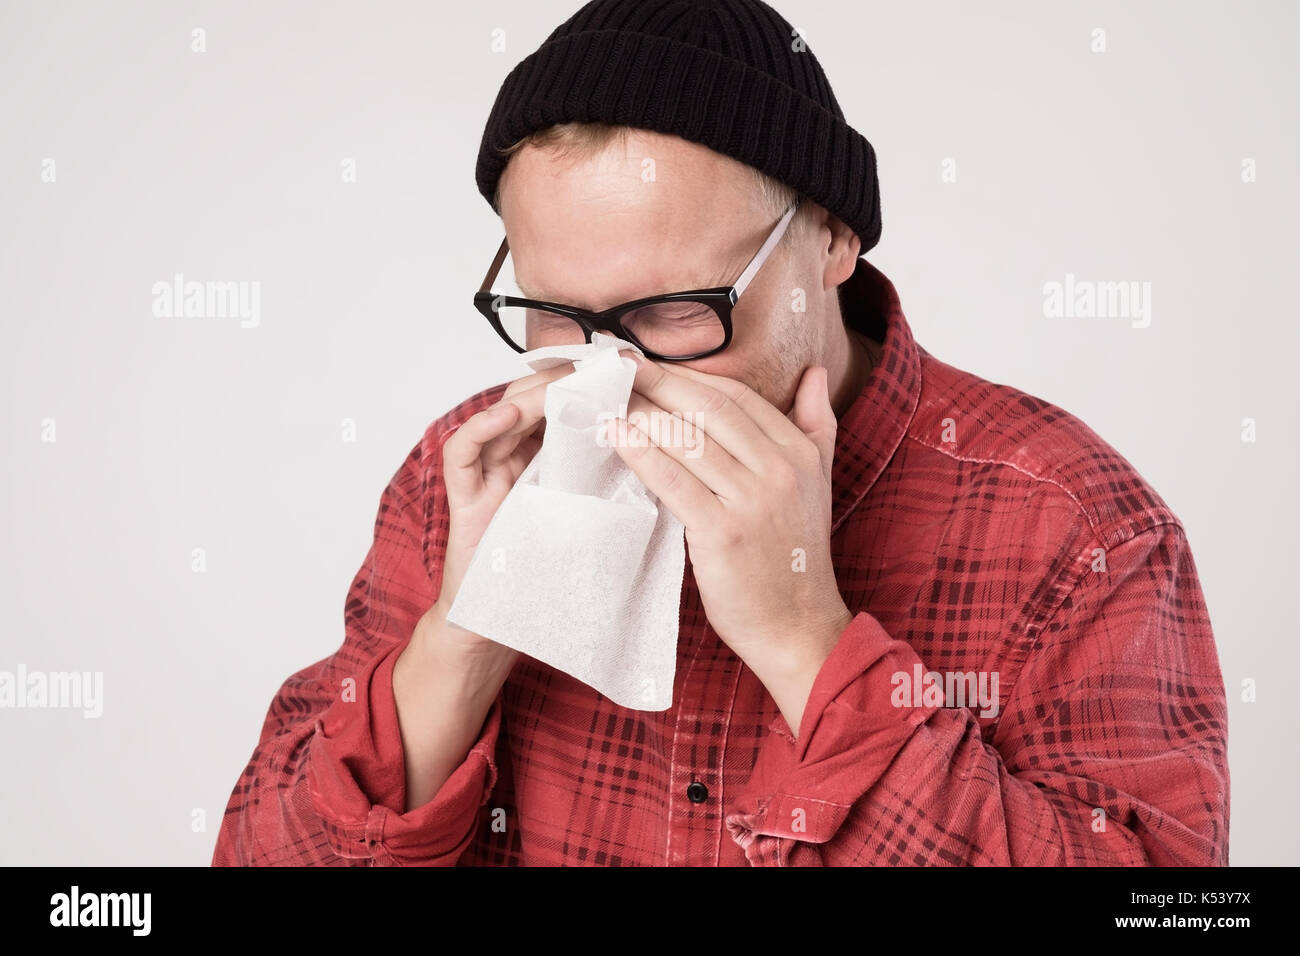 Caucasian Man with handkerchief sneezing feeling unwell - Stock Image